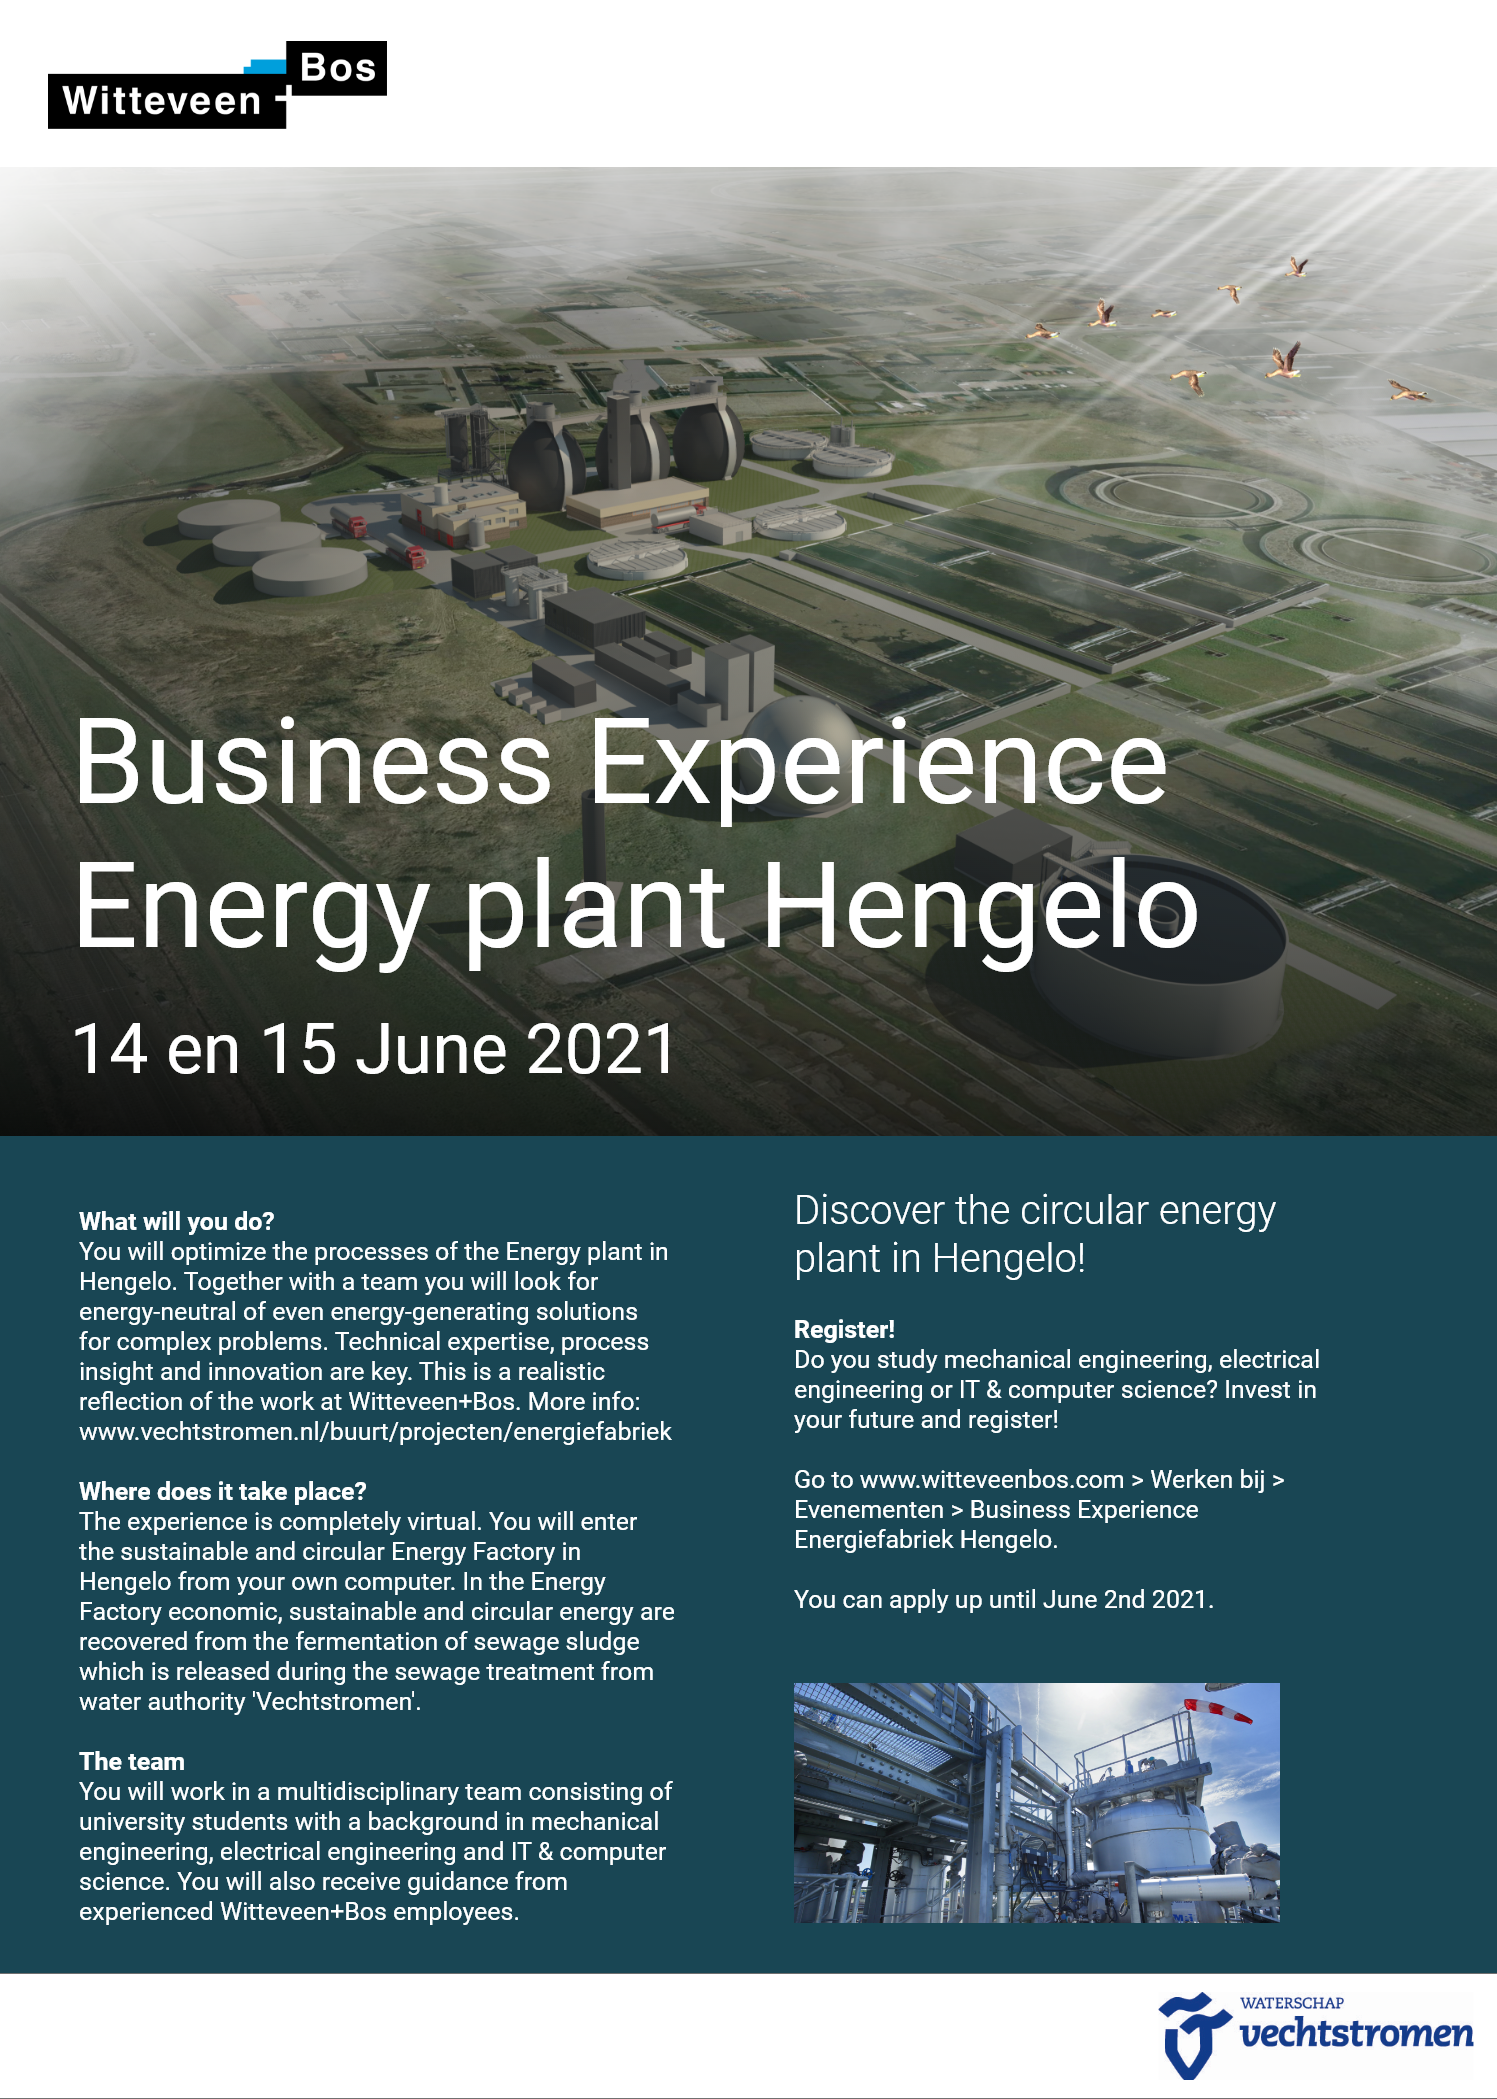 We are organizing a brand new Business experience on 14 and 15 June in a very inspiring environment, namely the power plant in Hengelo. You enter the sustainable and circular Energy Factory from behind your computer. Together with a multidisciplinary team you will look for energy-neutral or even energy-generating solutions for complex problems. You will receive guidance from experienced Witteveen + Bos employees. This experience is for university students with a study in mechanical engineering, electrical engineering and technical computer science.